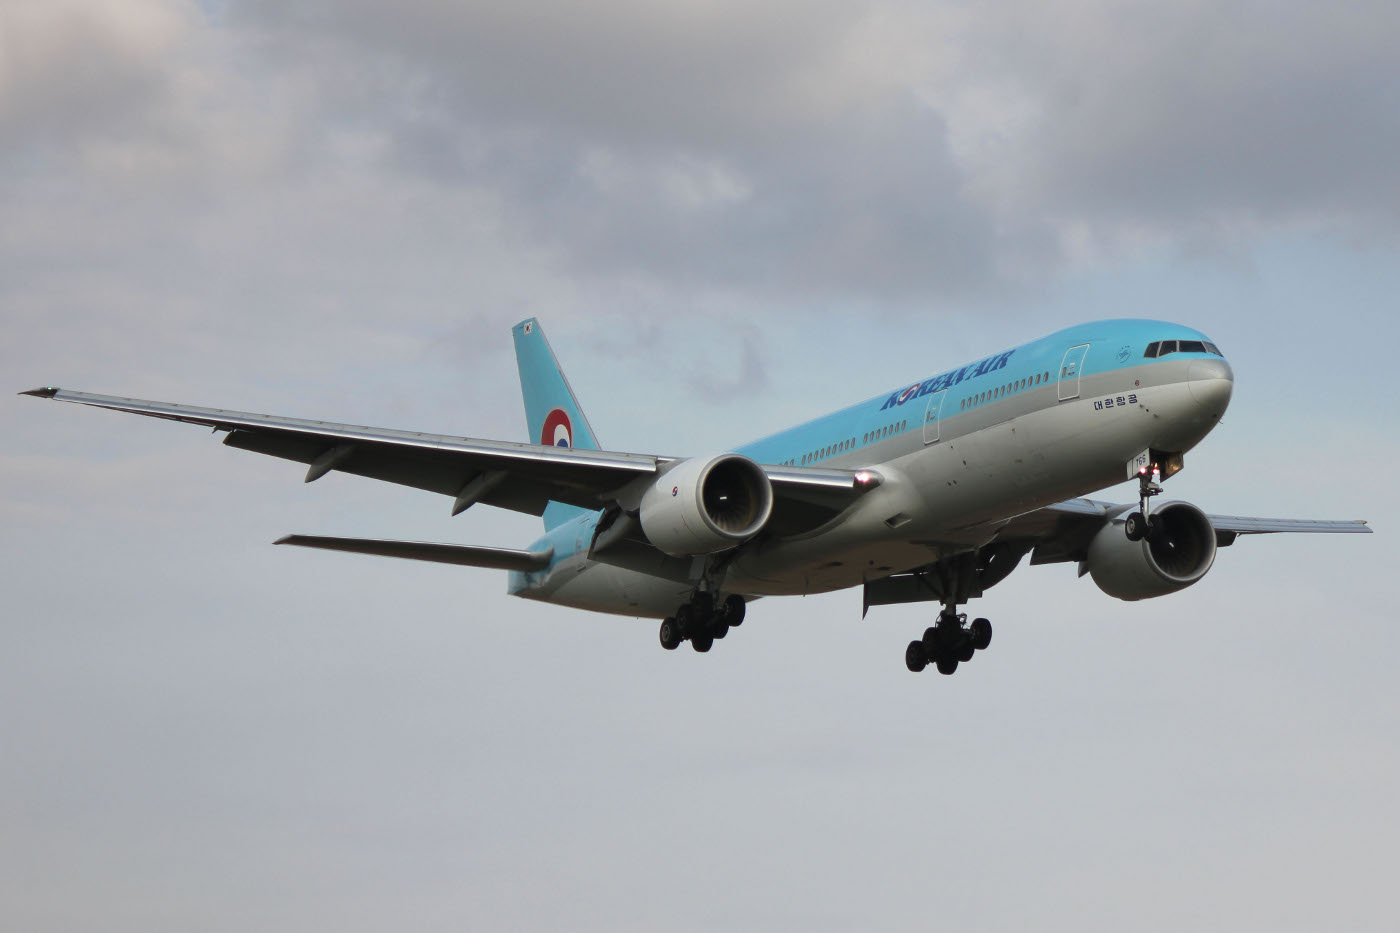 B777-2B5/ER Korean air